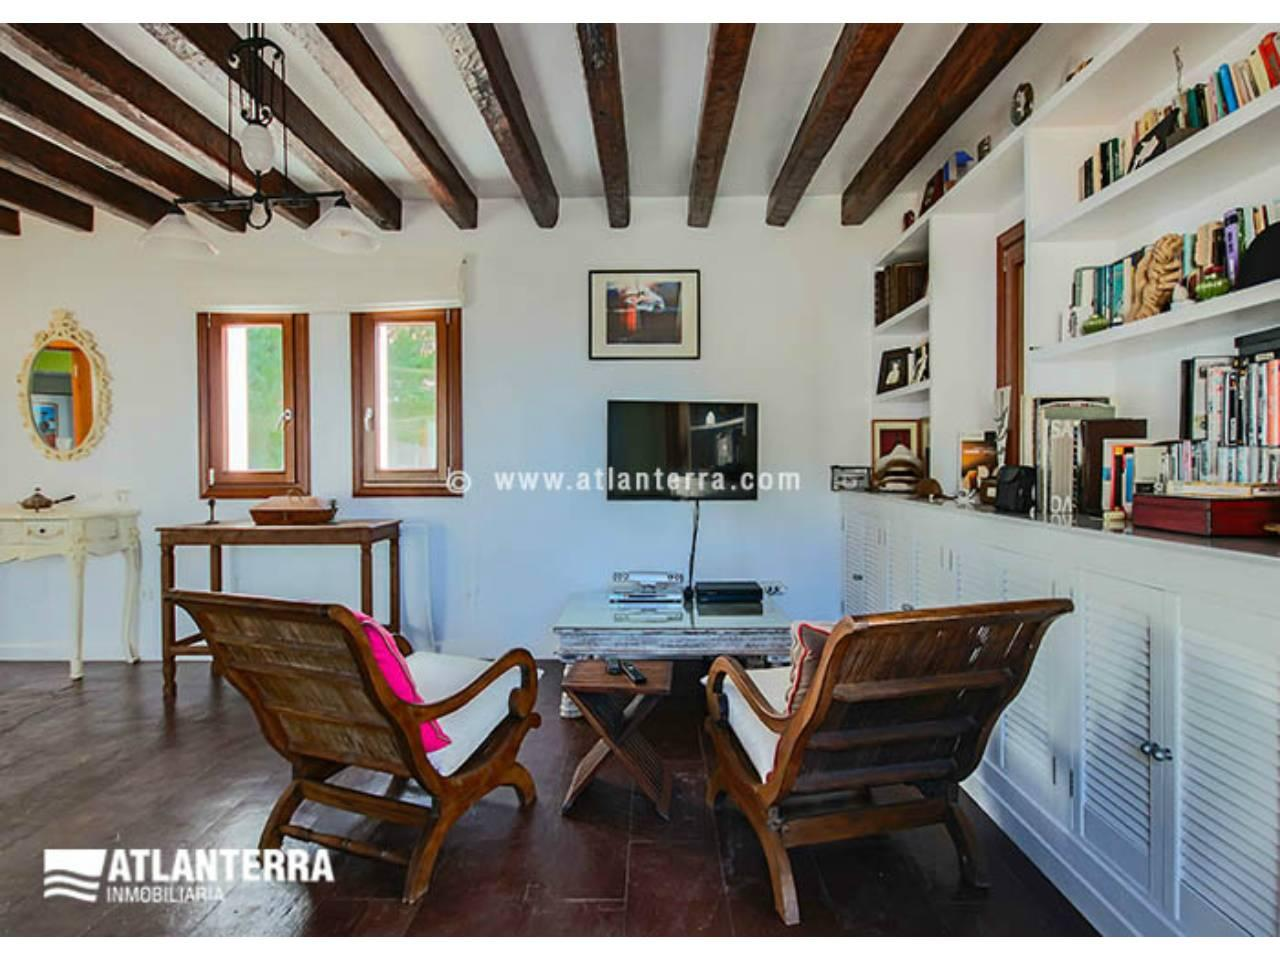 25885350 3170057 foto 913804 - Rustic style, privacy and wonderful views in this villa in Zahara de los Atunes (Cádiz)